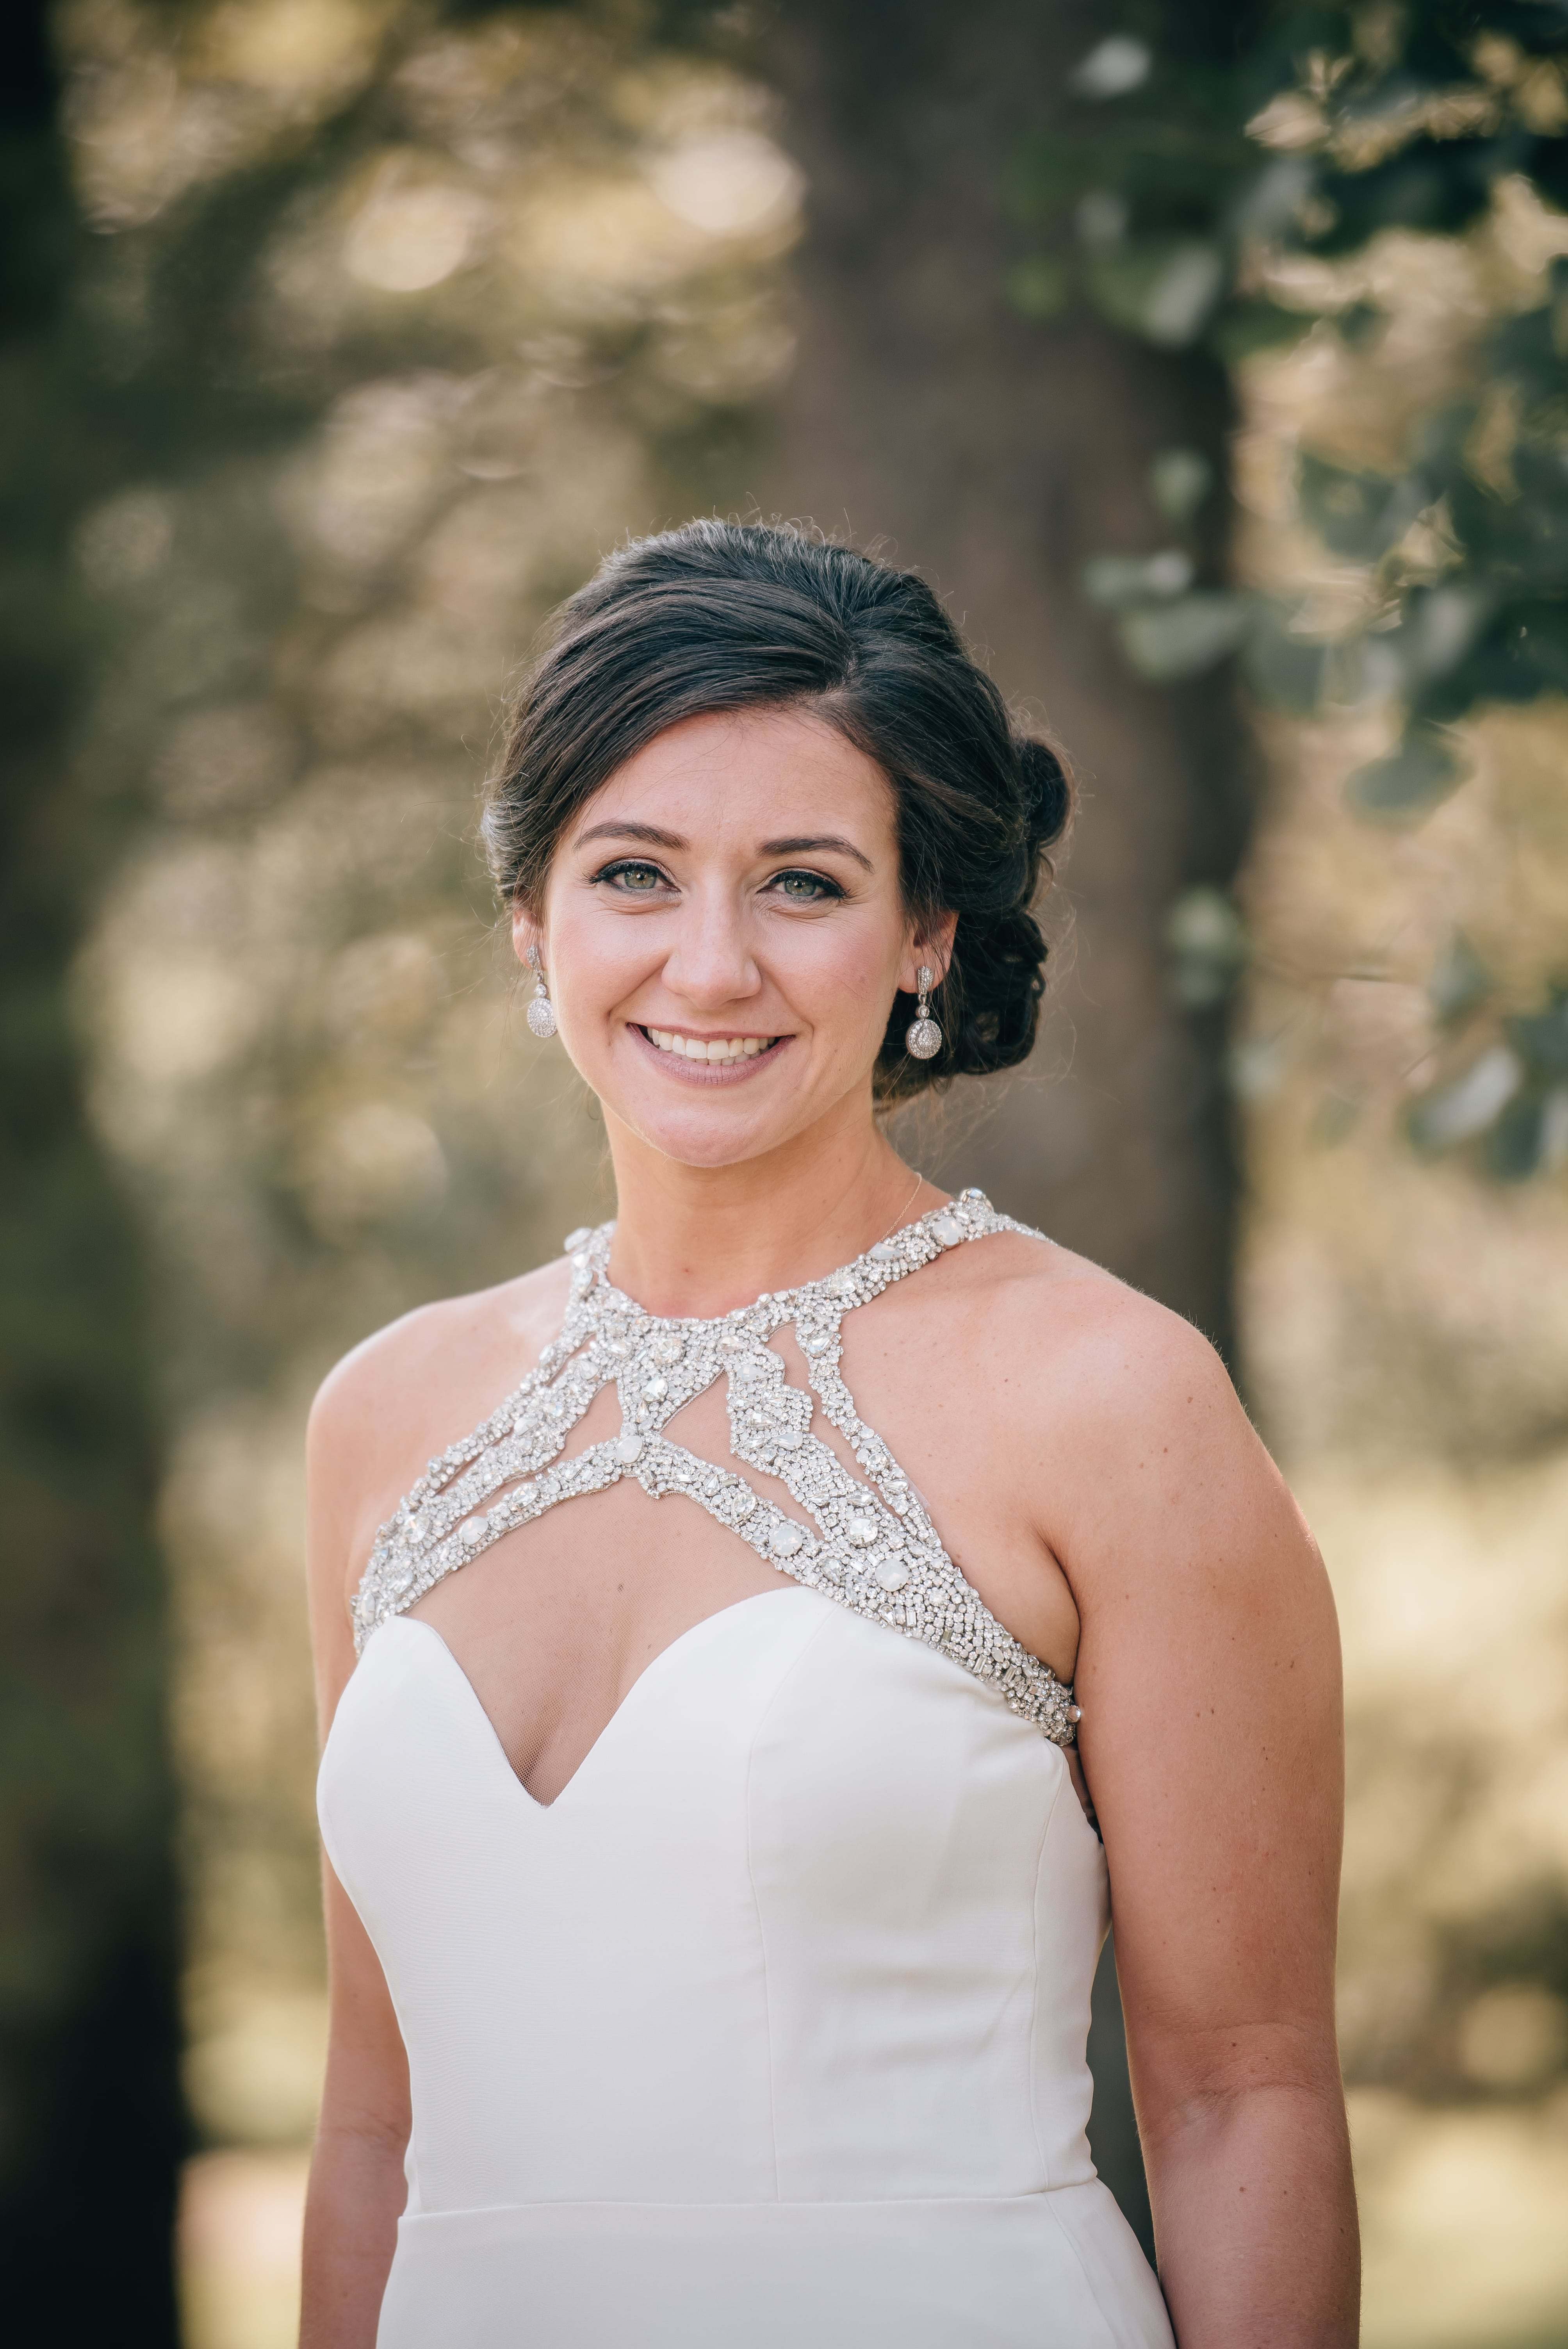 Bride has knotted updo and romantic makeup by Cali Stott Artistry for her summer wedding at The Ivy Place designed by Magnificent Moments Weddings